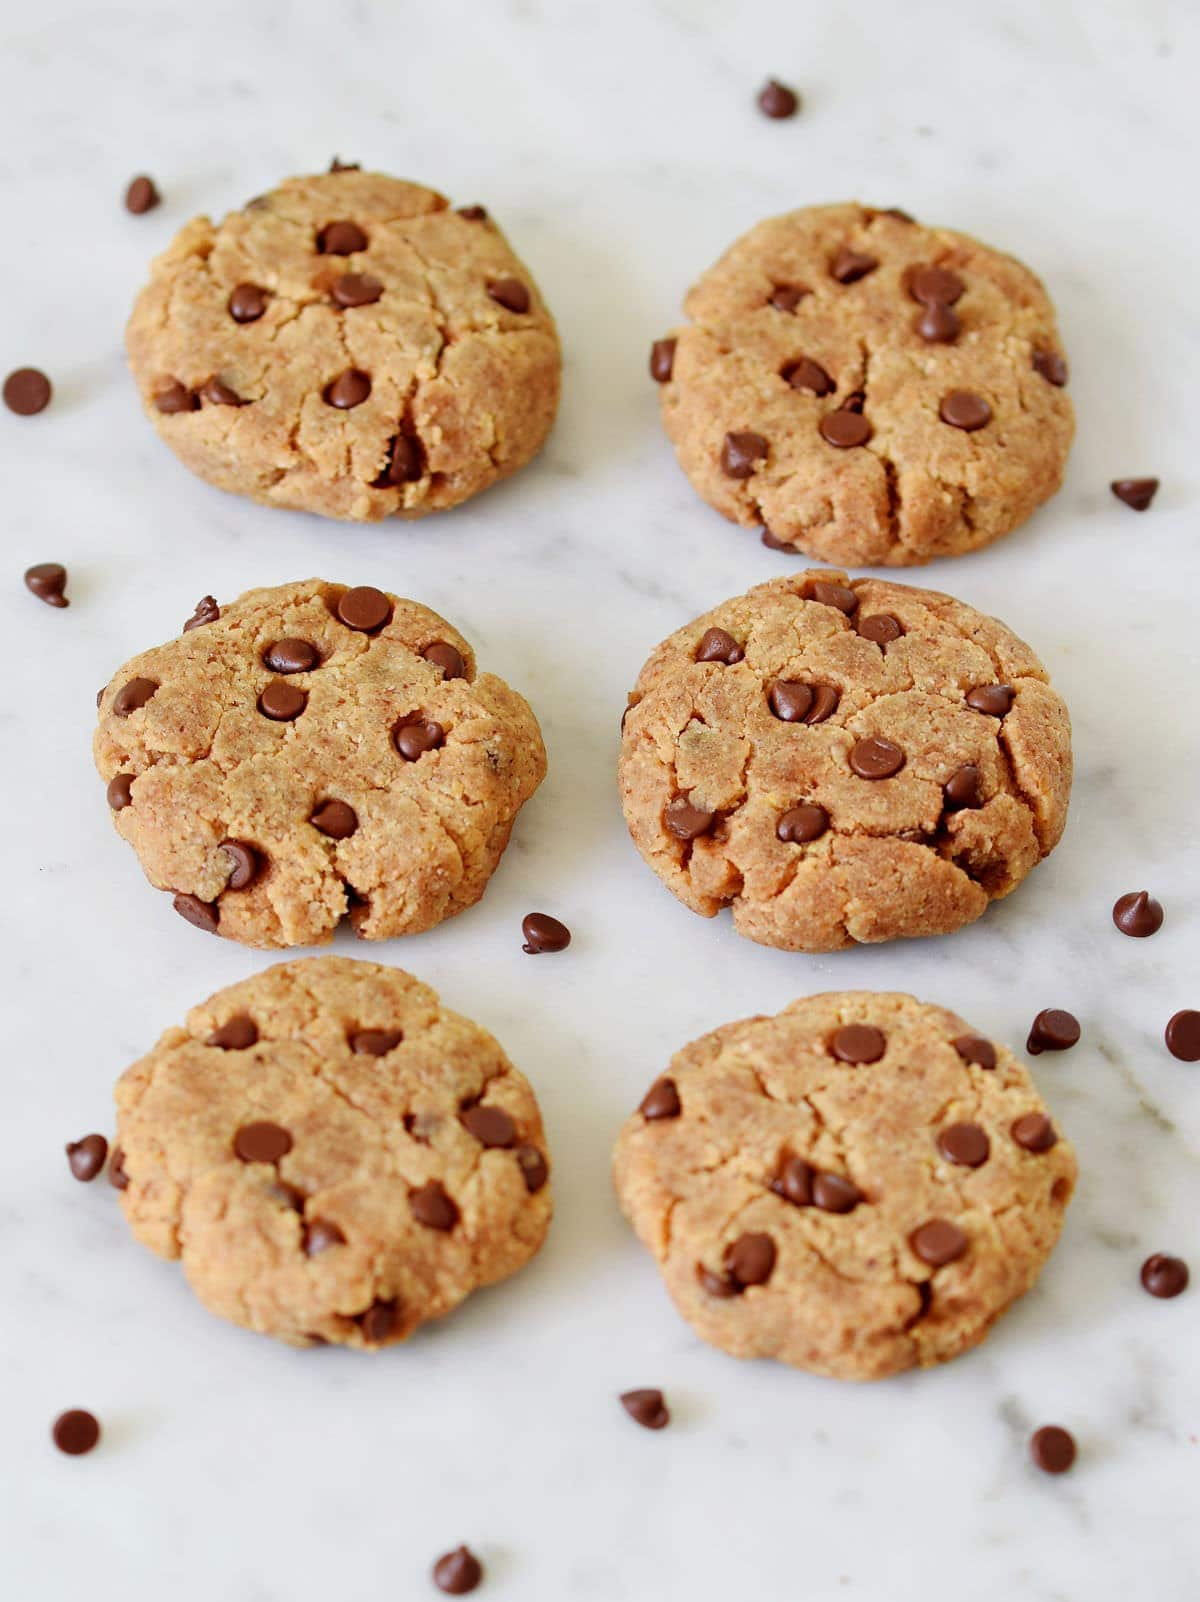 6 gluten-free vegan cookies on a marble tile from the side